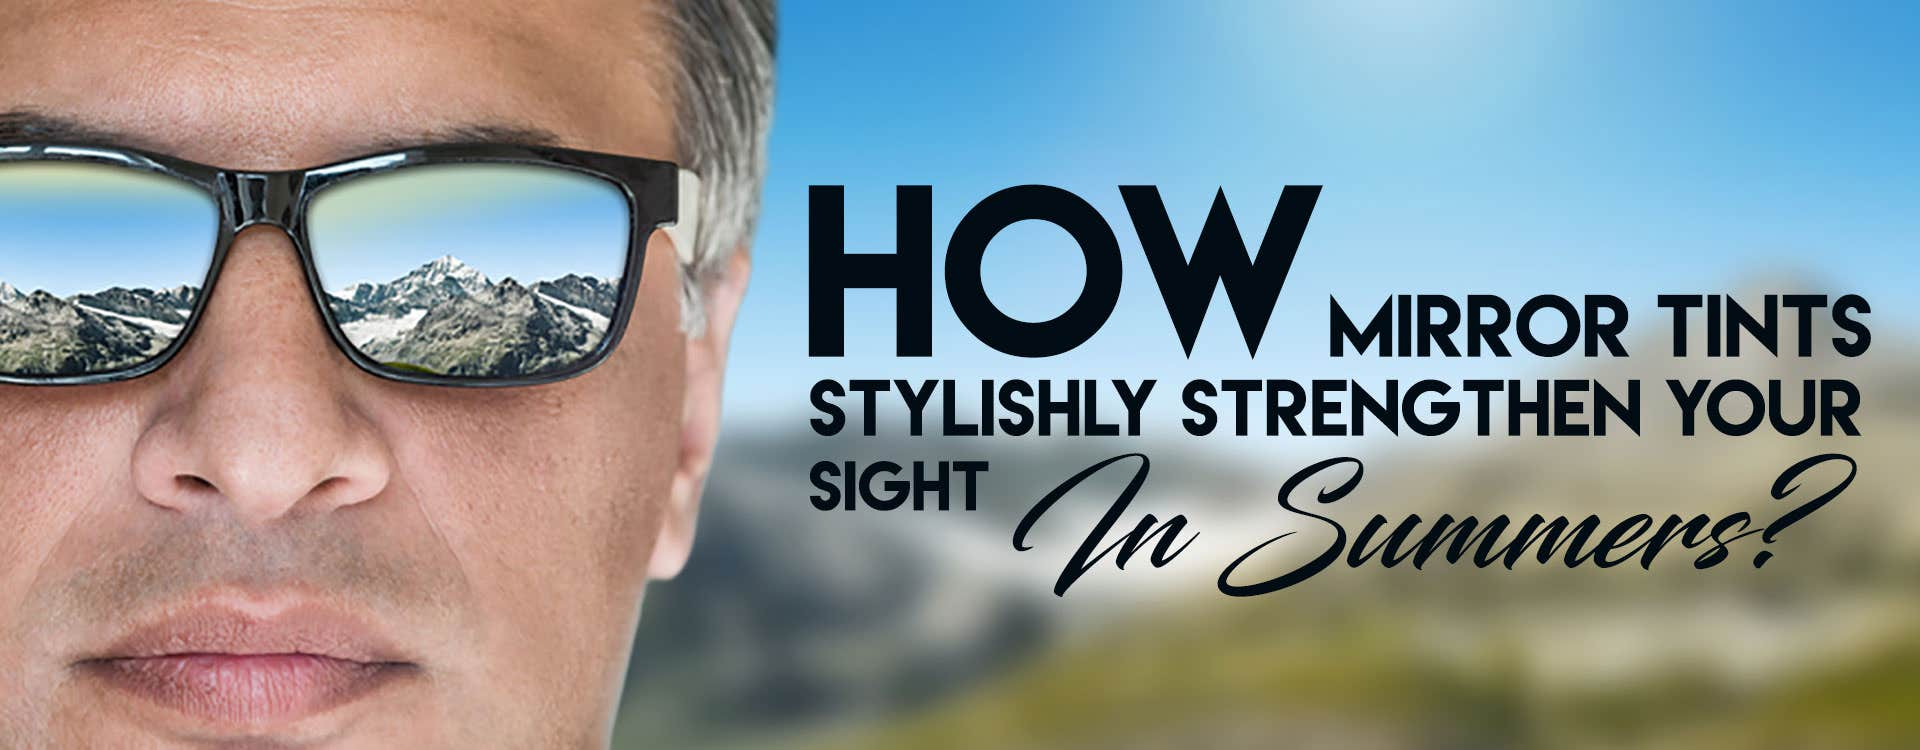 How Mirror Tints Stylishly Strengthen Your Sight In Summers?